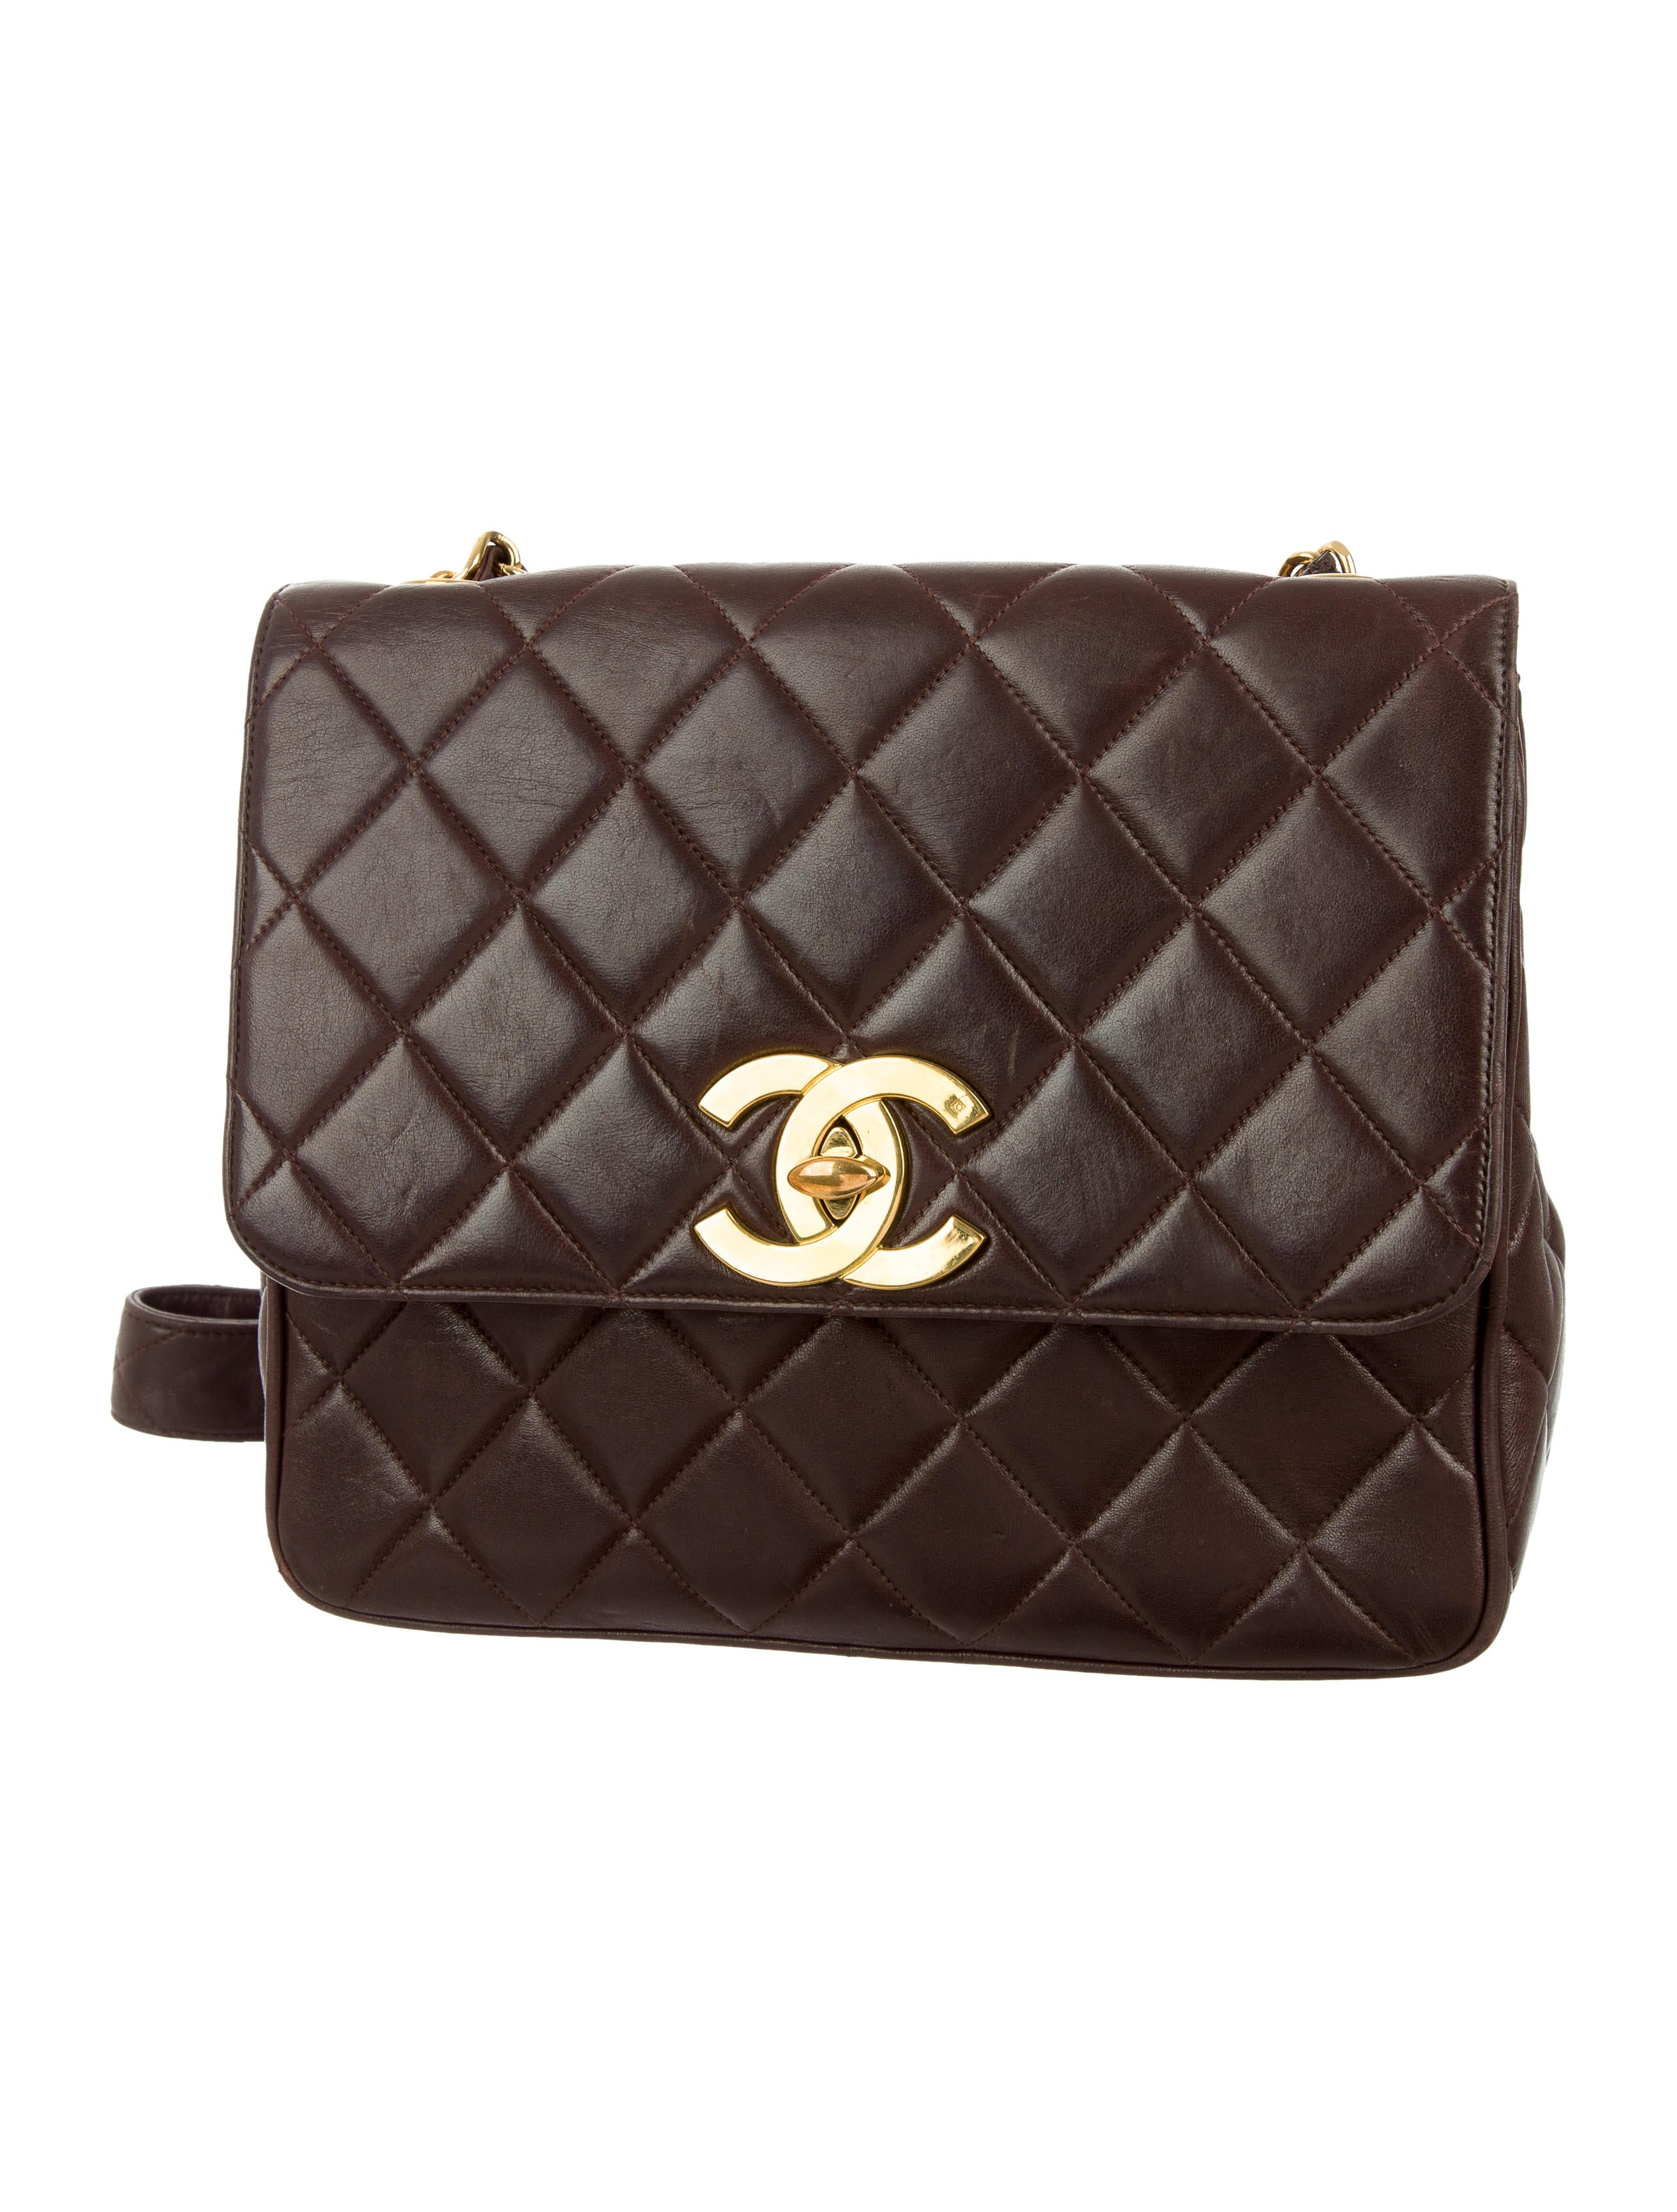 Chanel Vintage Quilted Lambskin Crossbody Bag Handbags